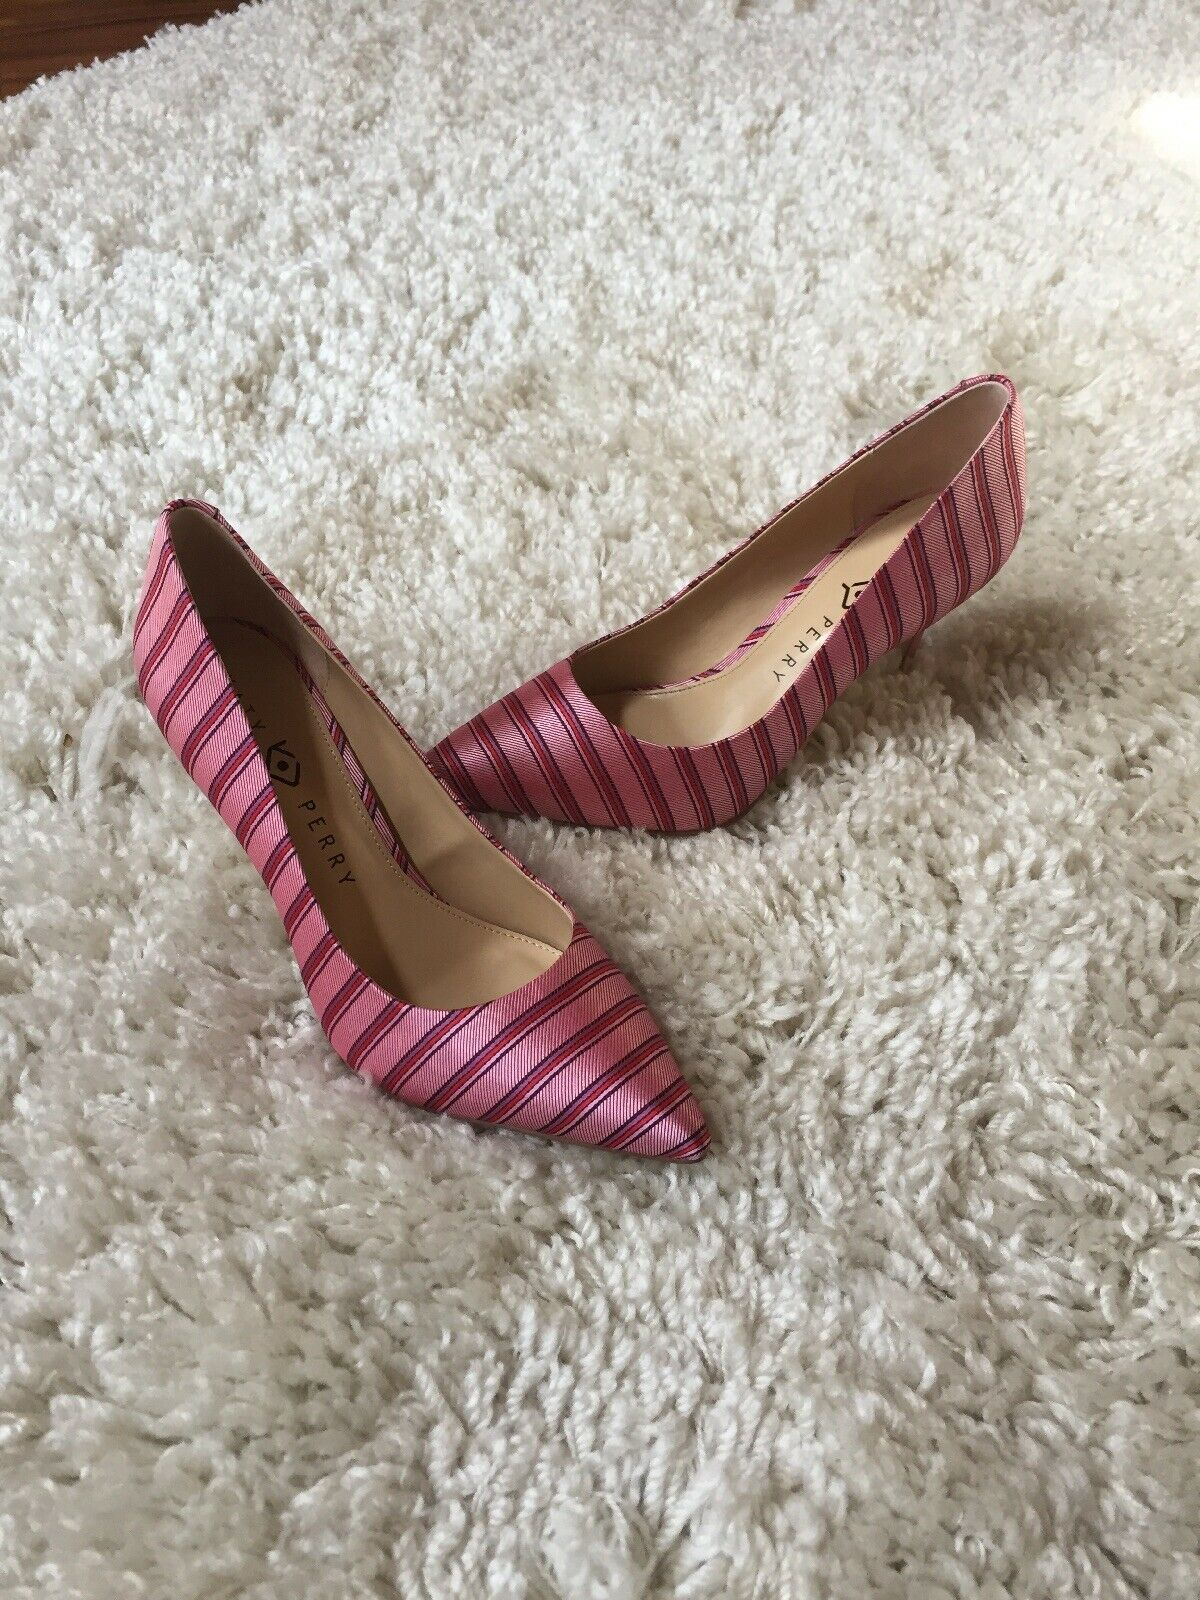 Katy Perry The Sissy Red Purple Pink Pump Size 8.5 34KP0356 8010181